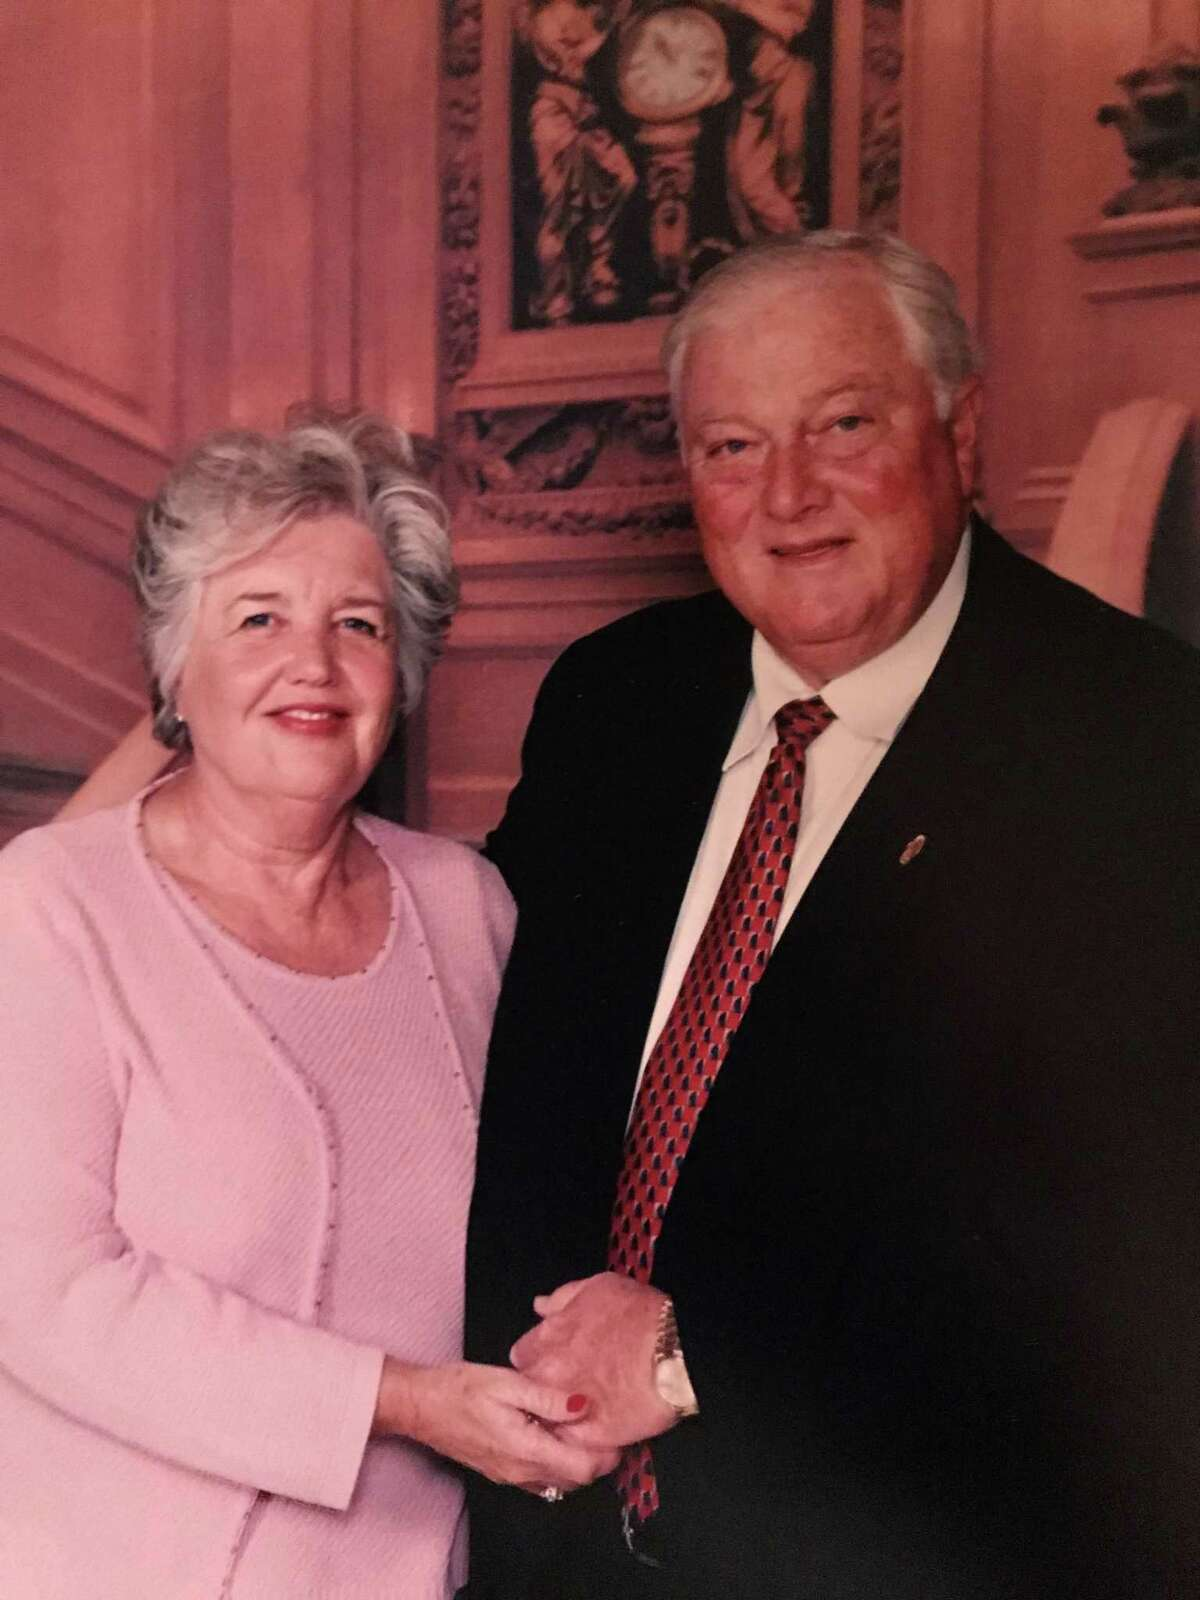 Beverly and John Carson, who founded and operated Oakdell Pharmacy along with their family ranch near Gonzalez, died in a car accident July 7. They were both 76.